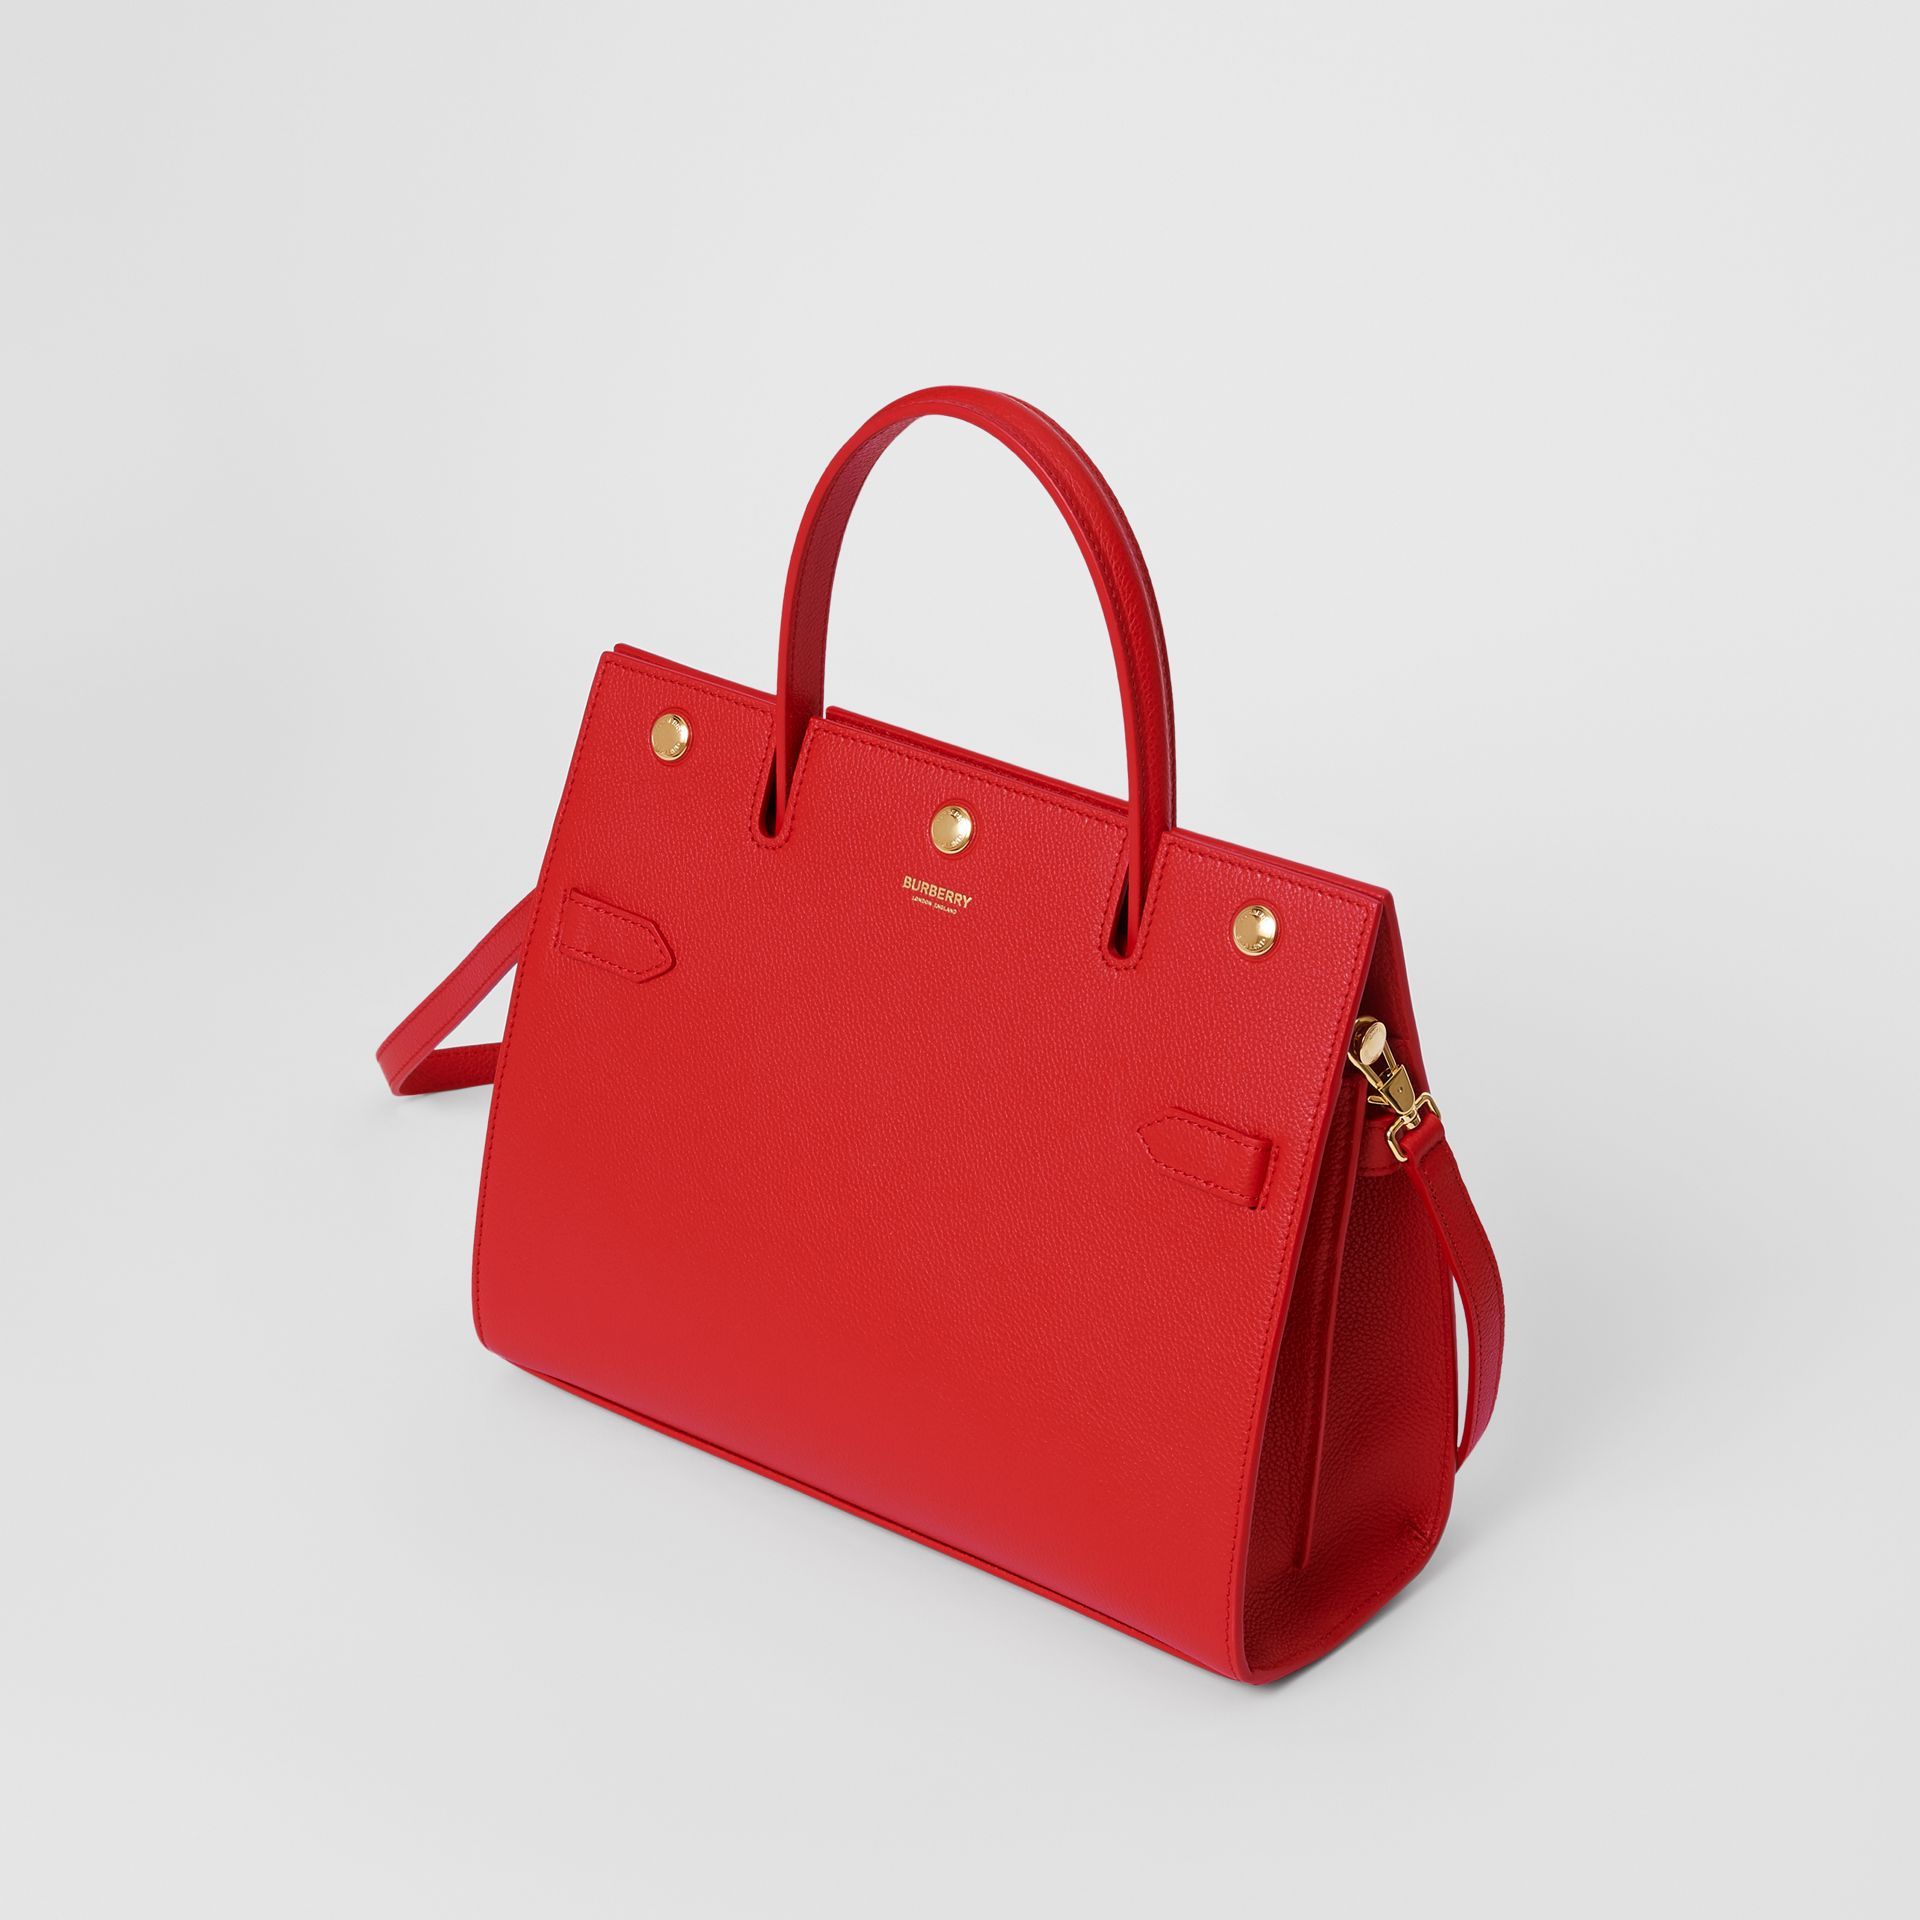 Small Leather Title Bag in Bright Red - Women | Burberry Singapore - gallery image 3